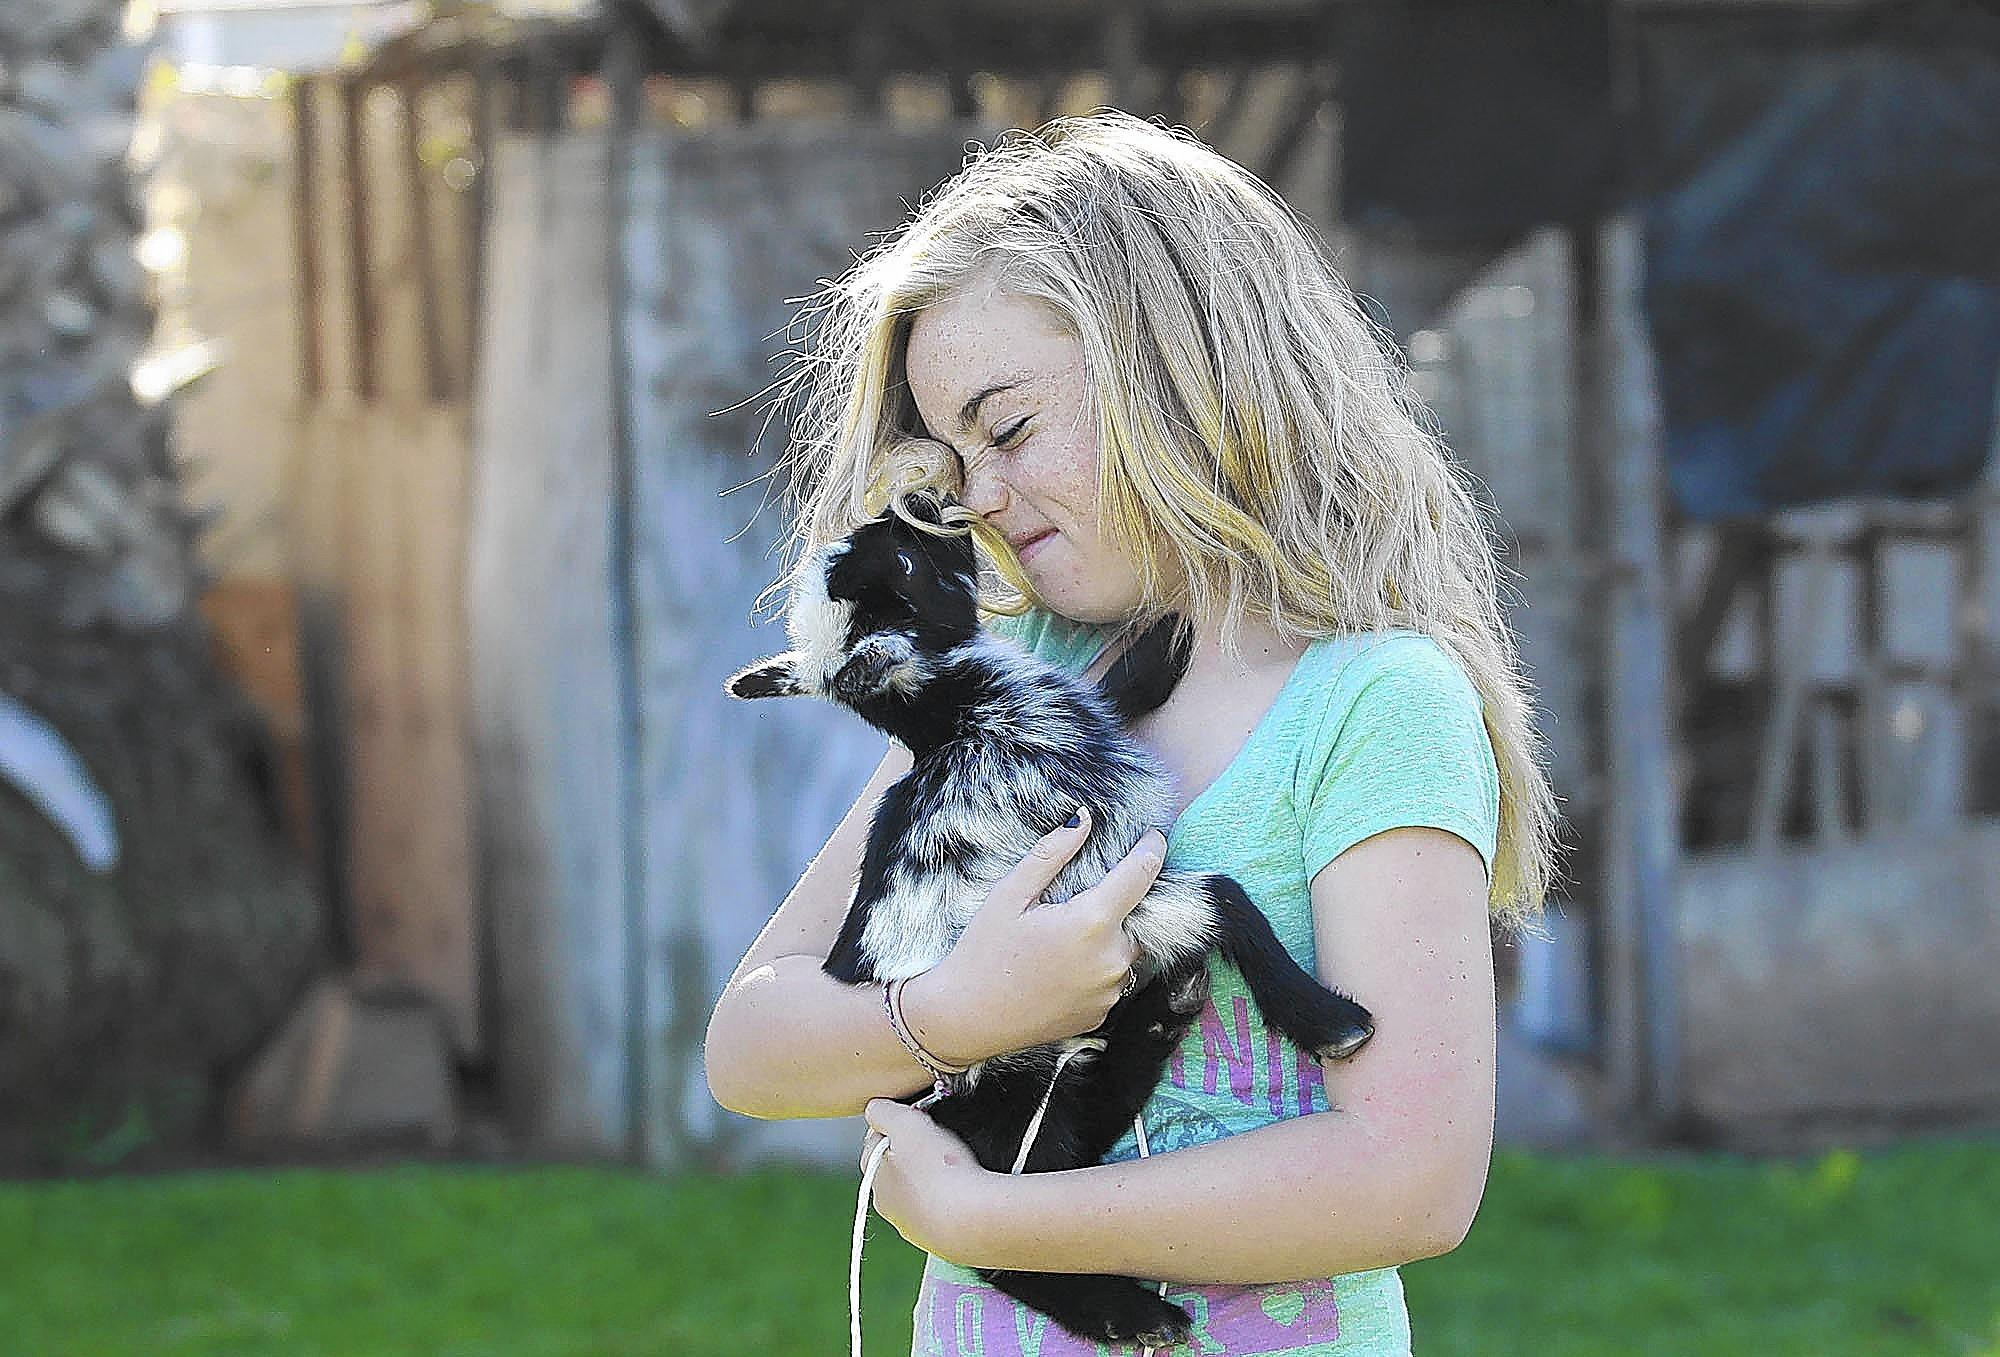 Reagan Krause, 13, cuddles up with a baby goat named Willow as she and other students take part in the 4H program at a home in Santa Ana Heights.